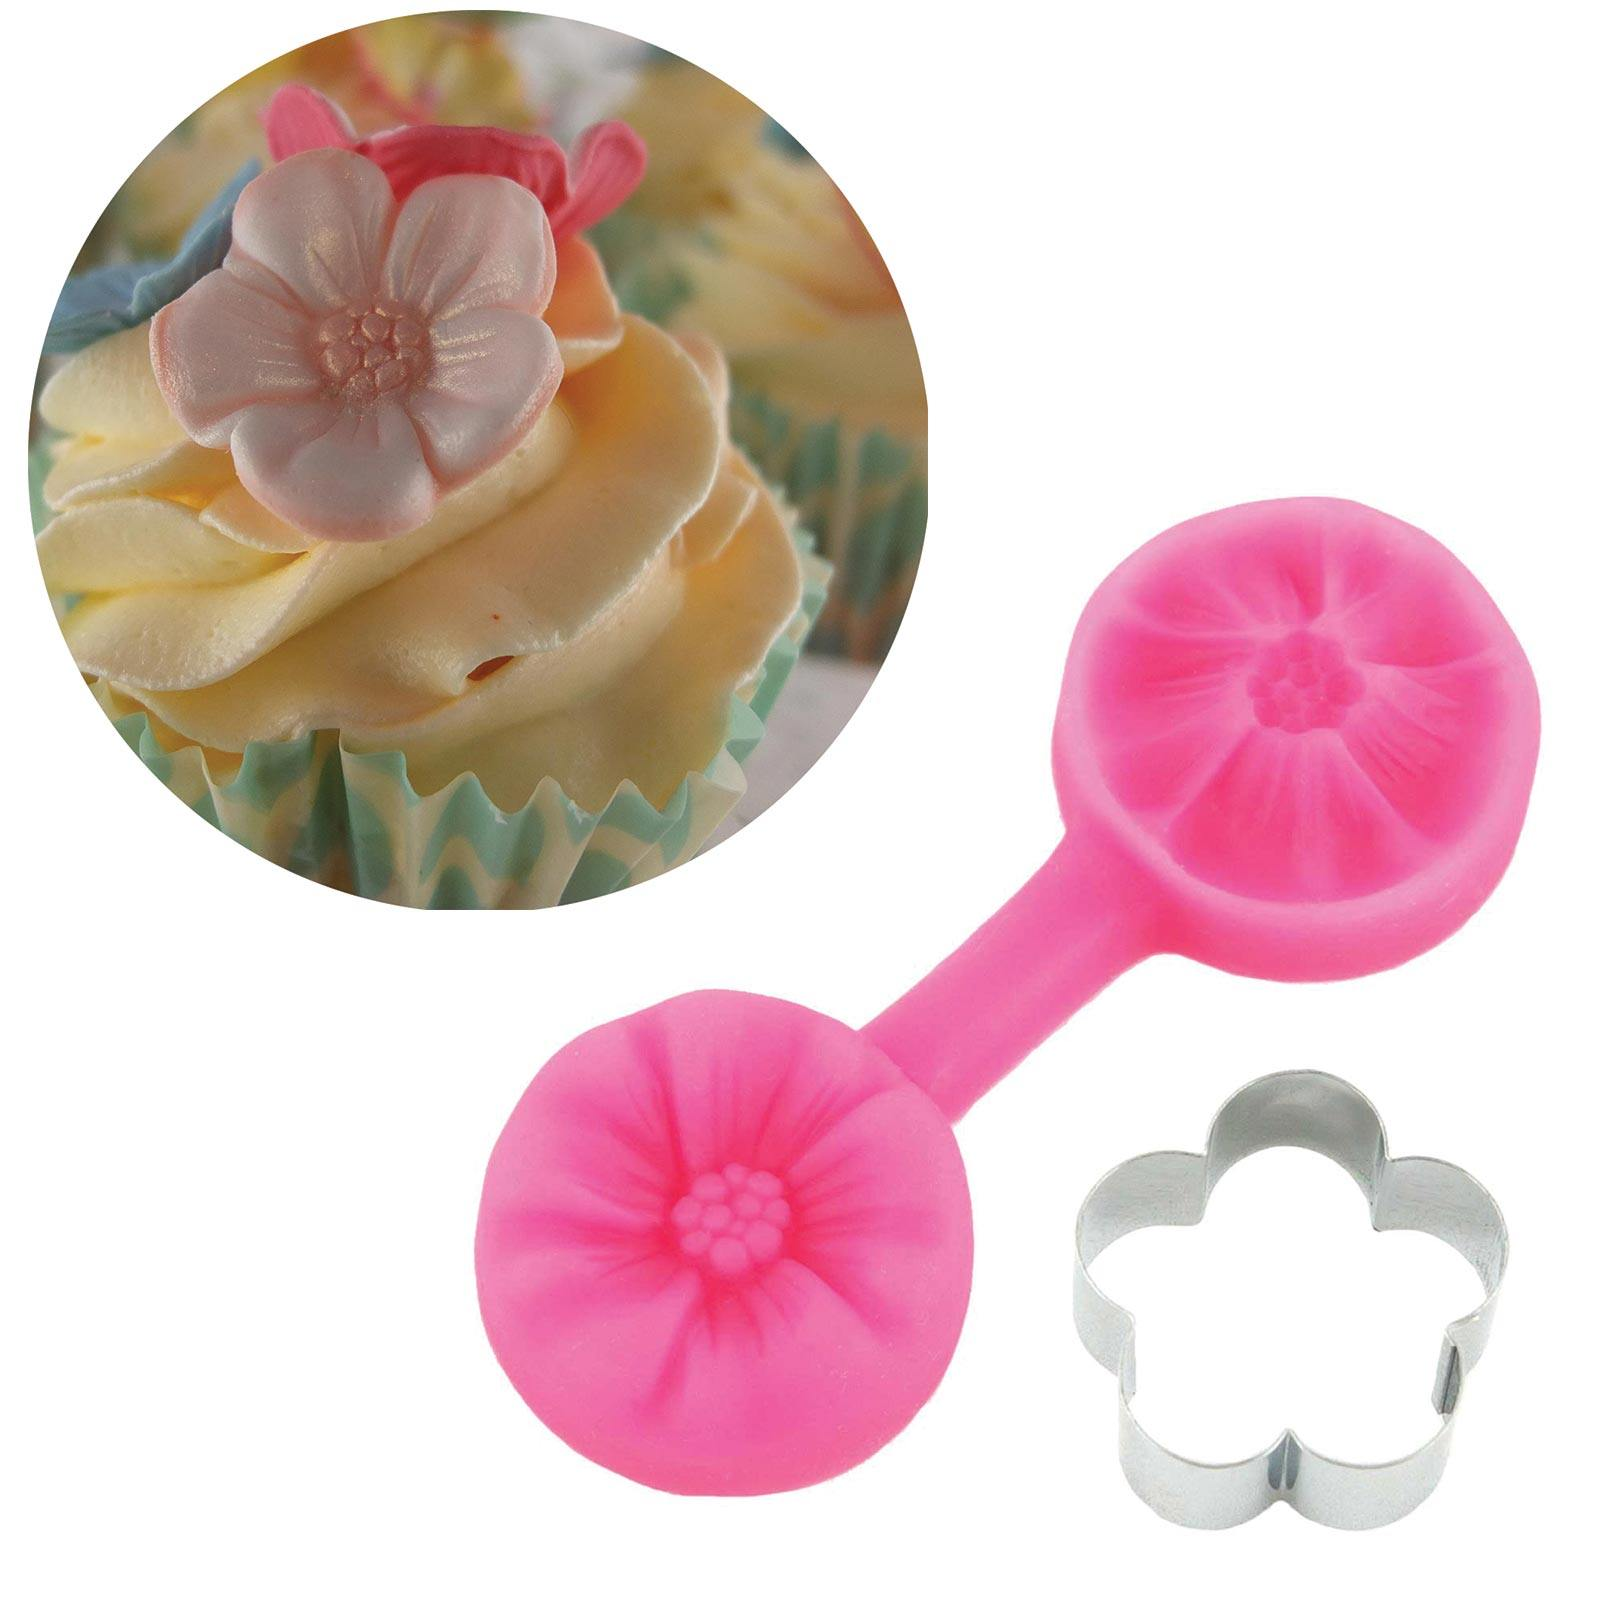 Cherry Blossom Cutter & Mould Set - Blossom Sugar Art cake_decorating_mold craft_mold icing_flowers